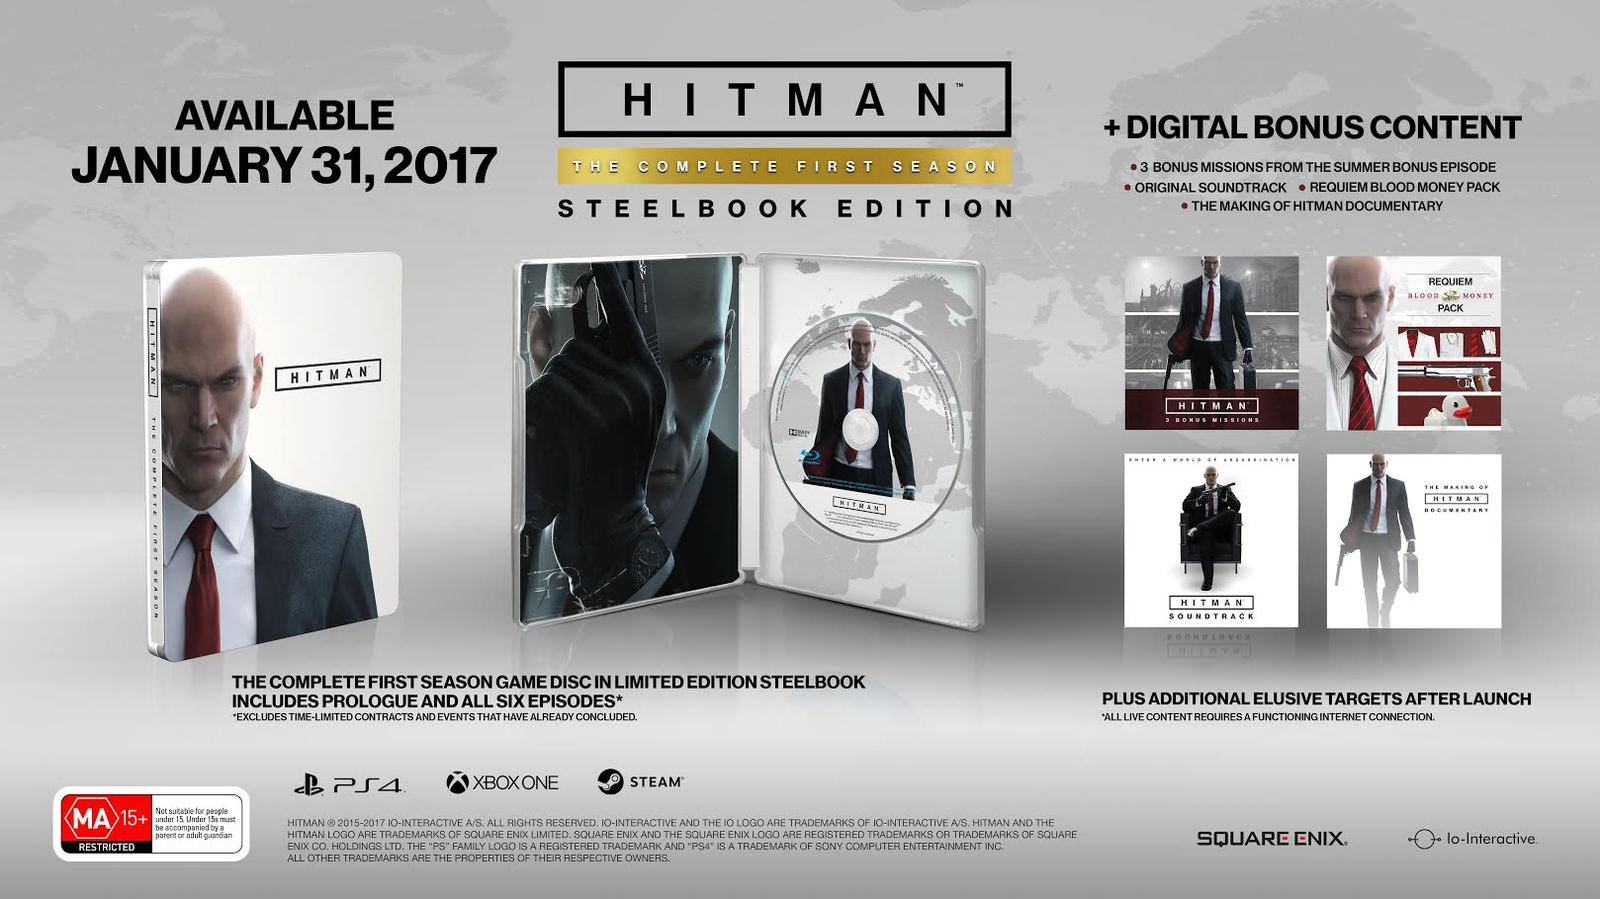 Hitman: The Complete First Season Steelbook Edition for Xbox One image